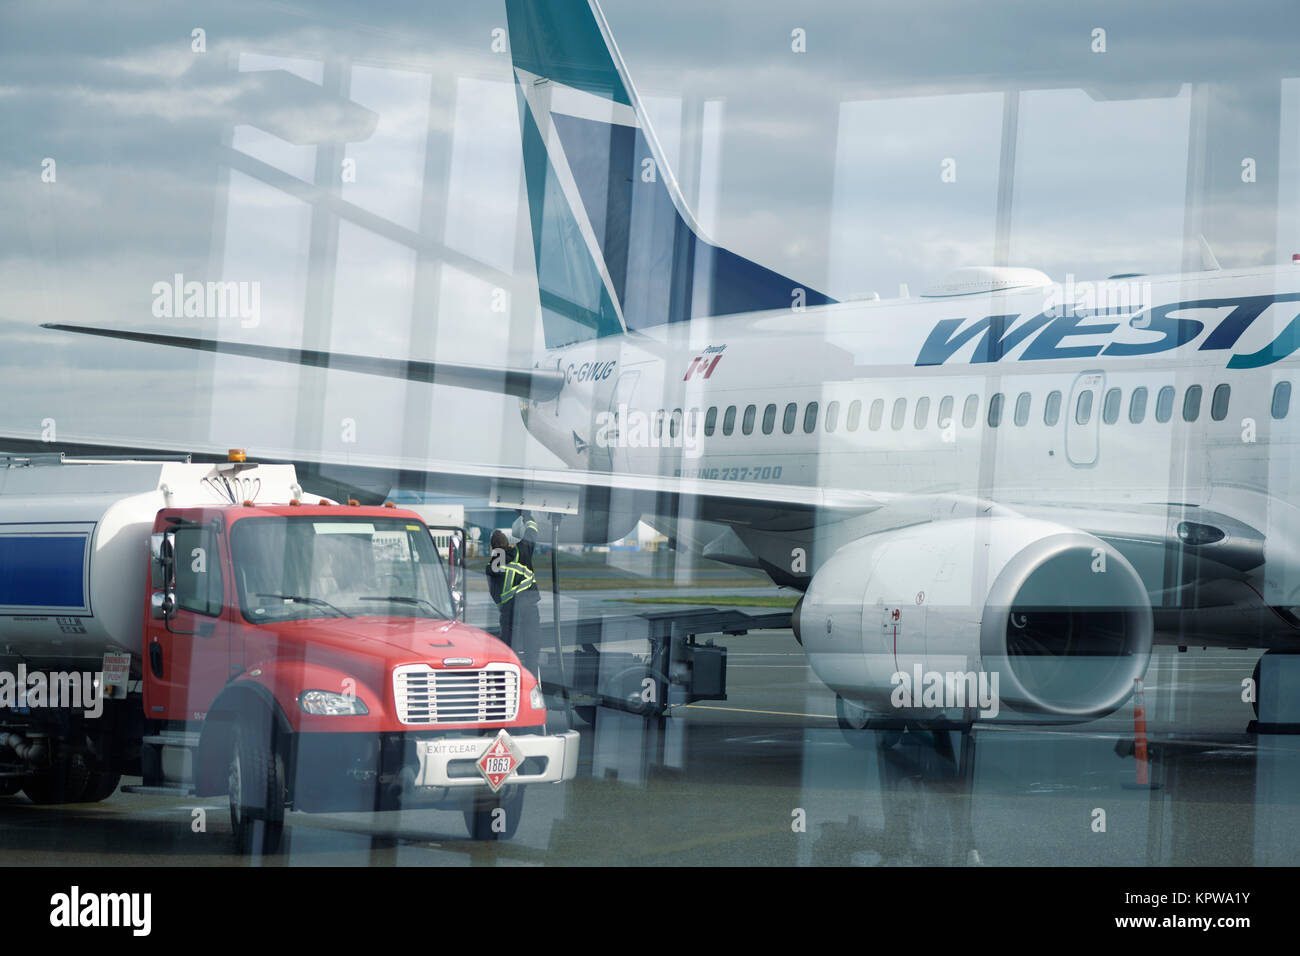 Artistic photo of fuel tanker track refueling WestJet airplane before a flight at a Victoria International airport, - Stock Image